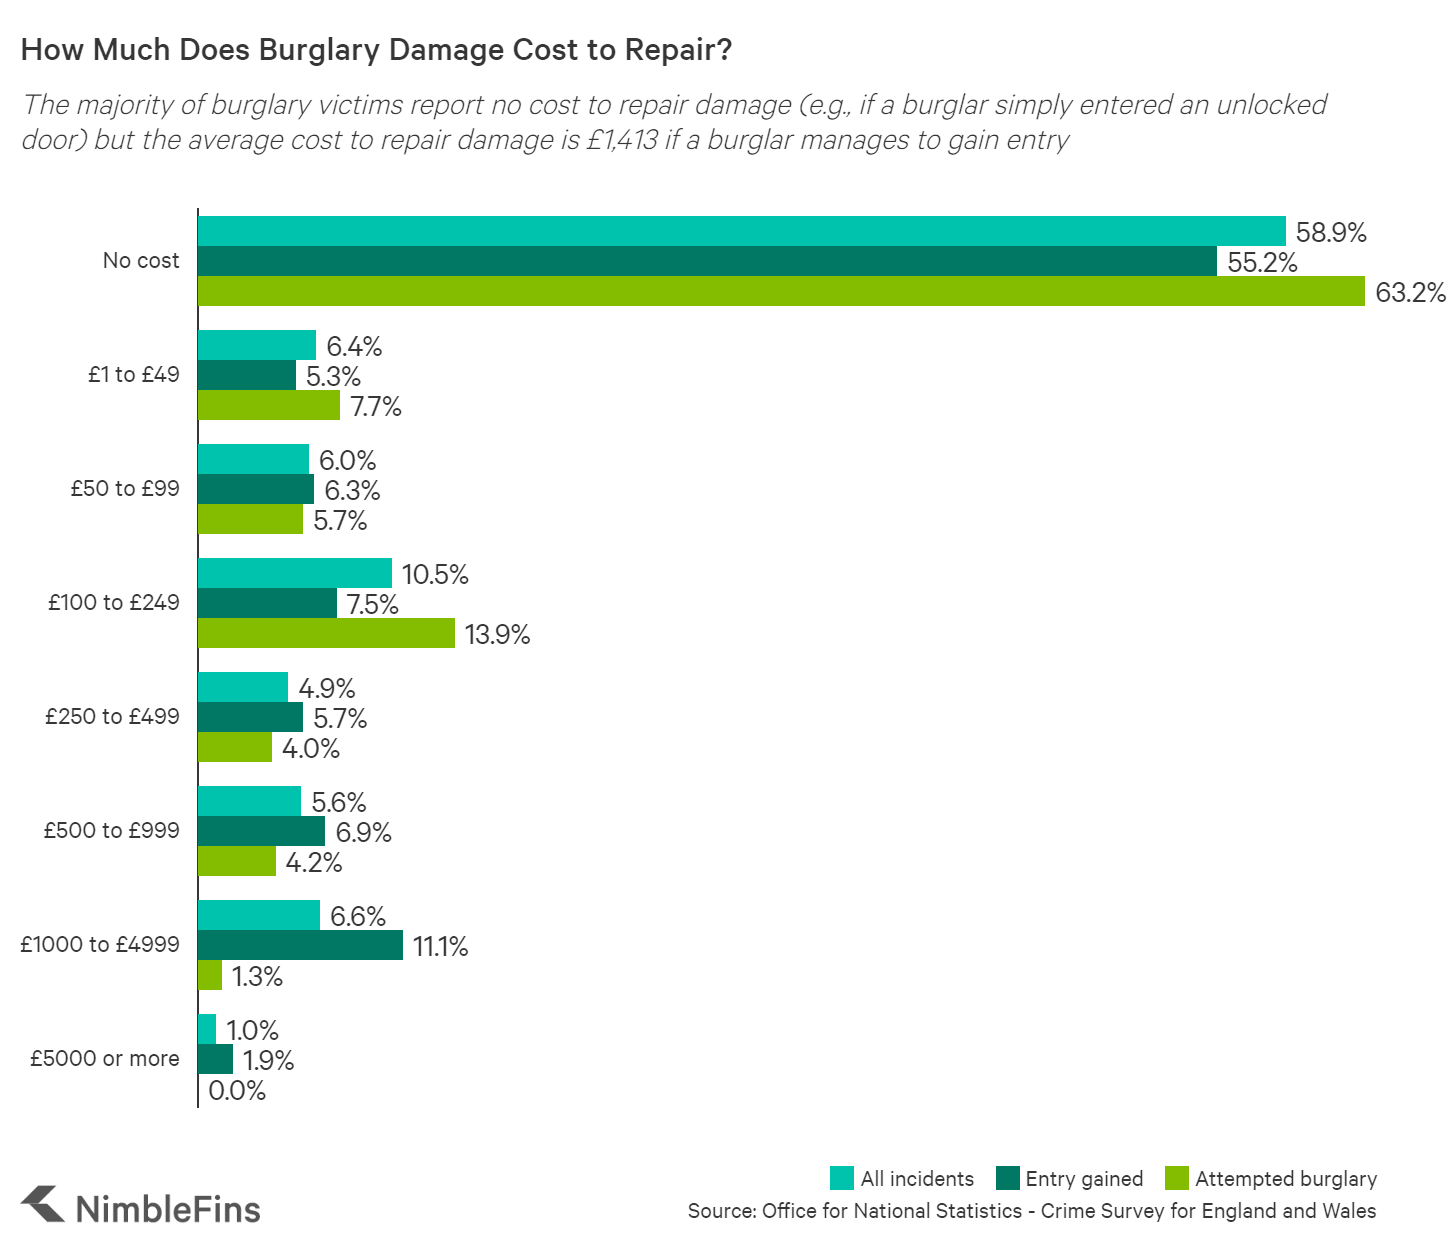 Chart showing the cost to repair burglary damage to doors and windows